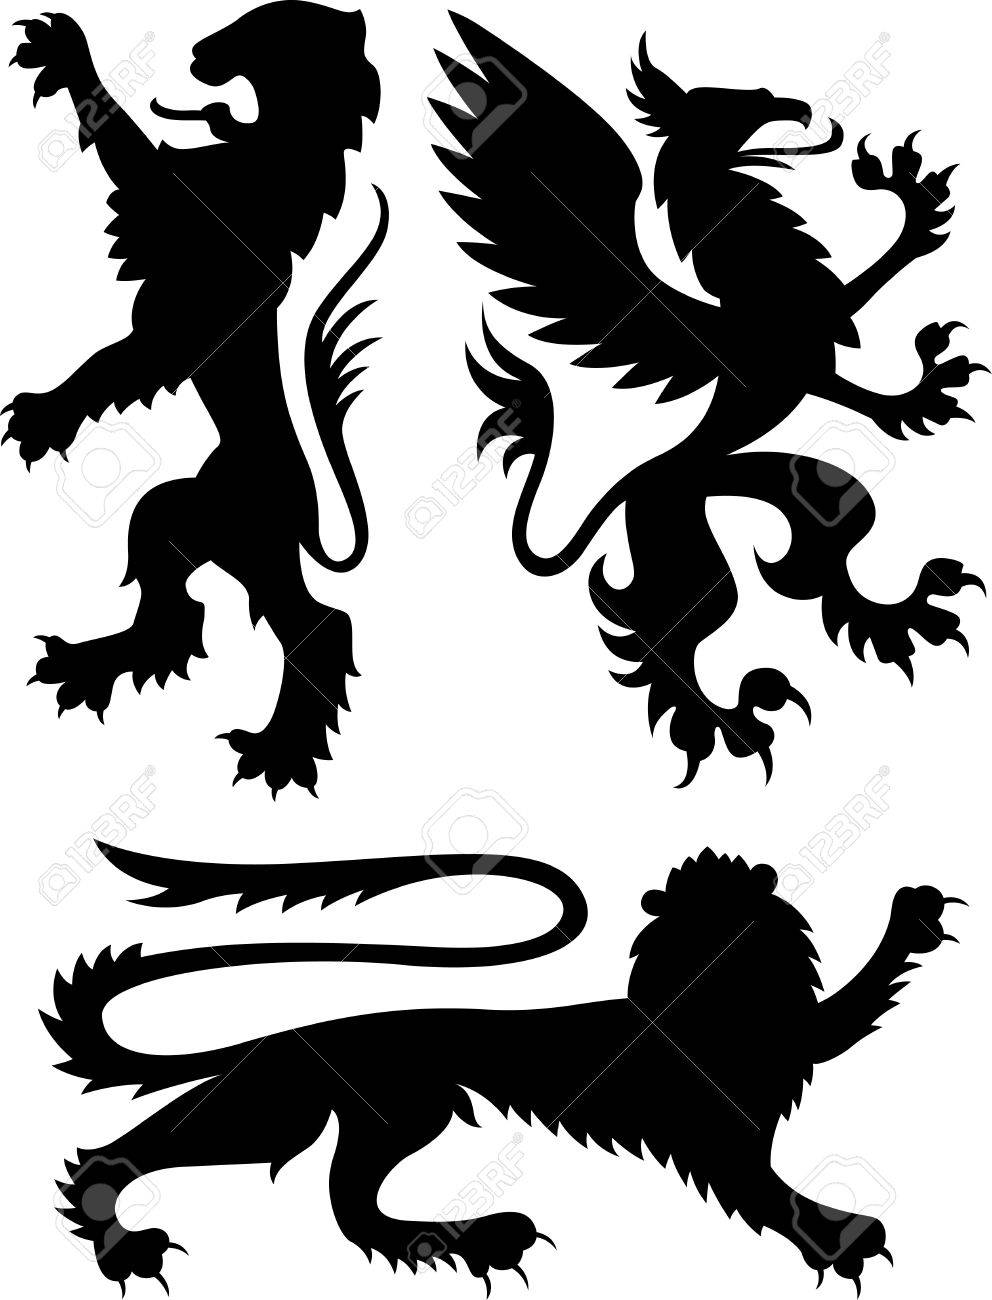 Heraldic griffin design Stock Vector - 8544695